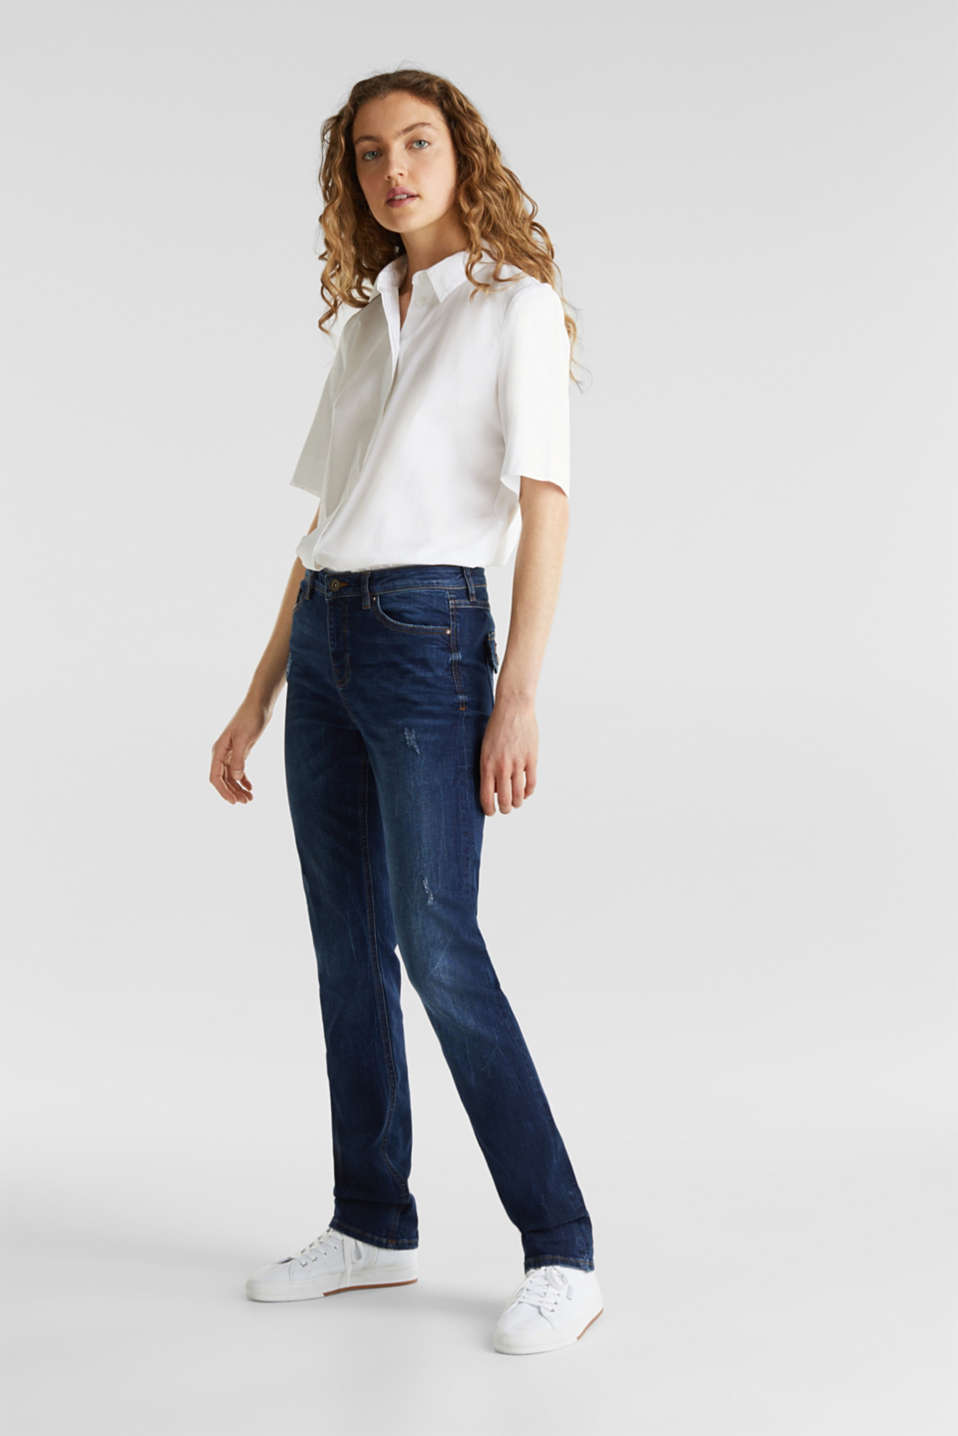 Stretch jeans with button-fastening flap pockets, BLUE DARK WASH, detail image number 1